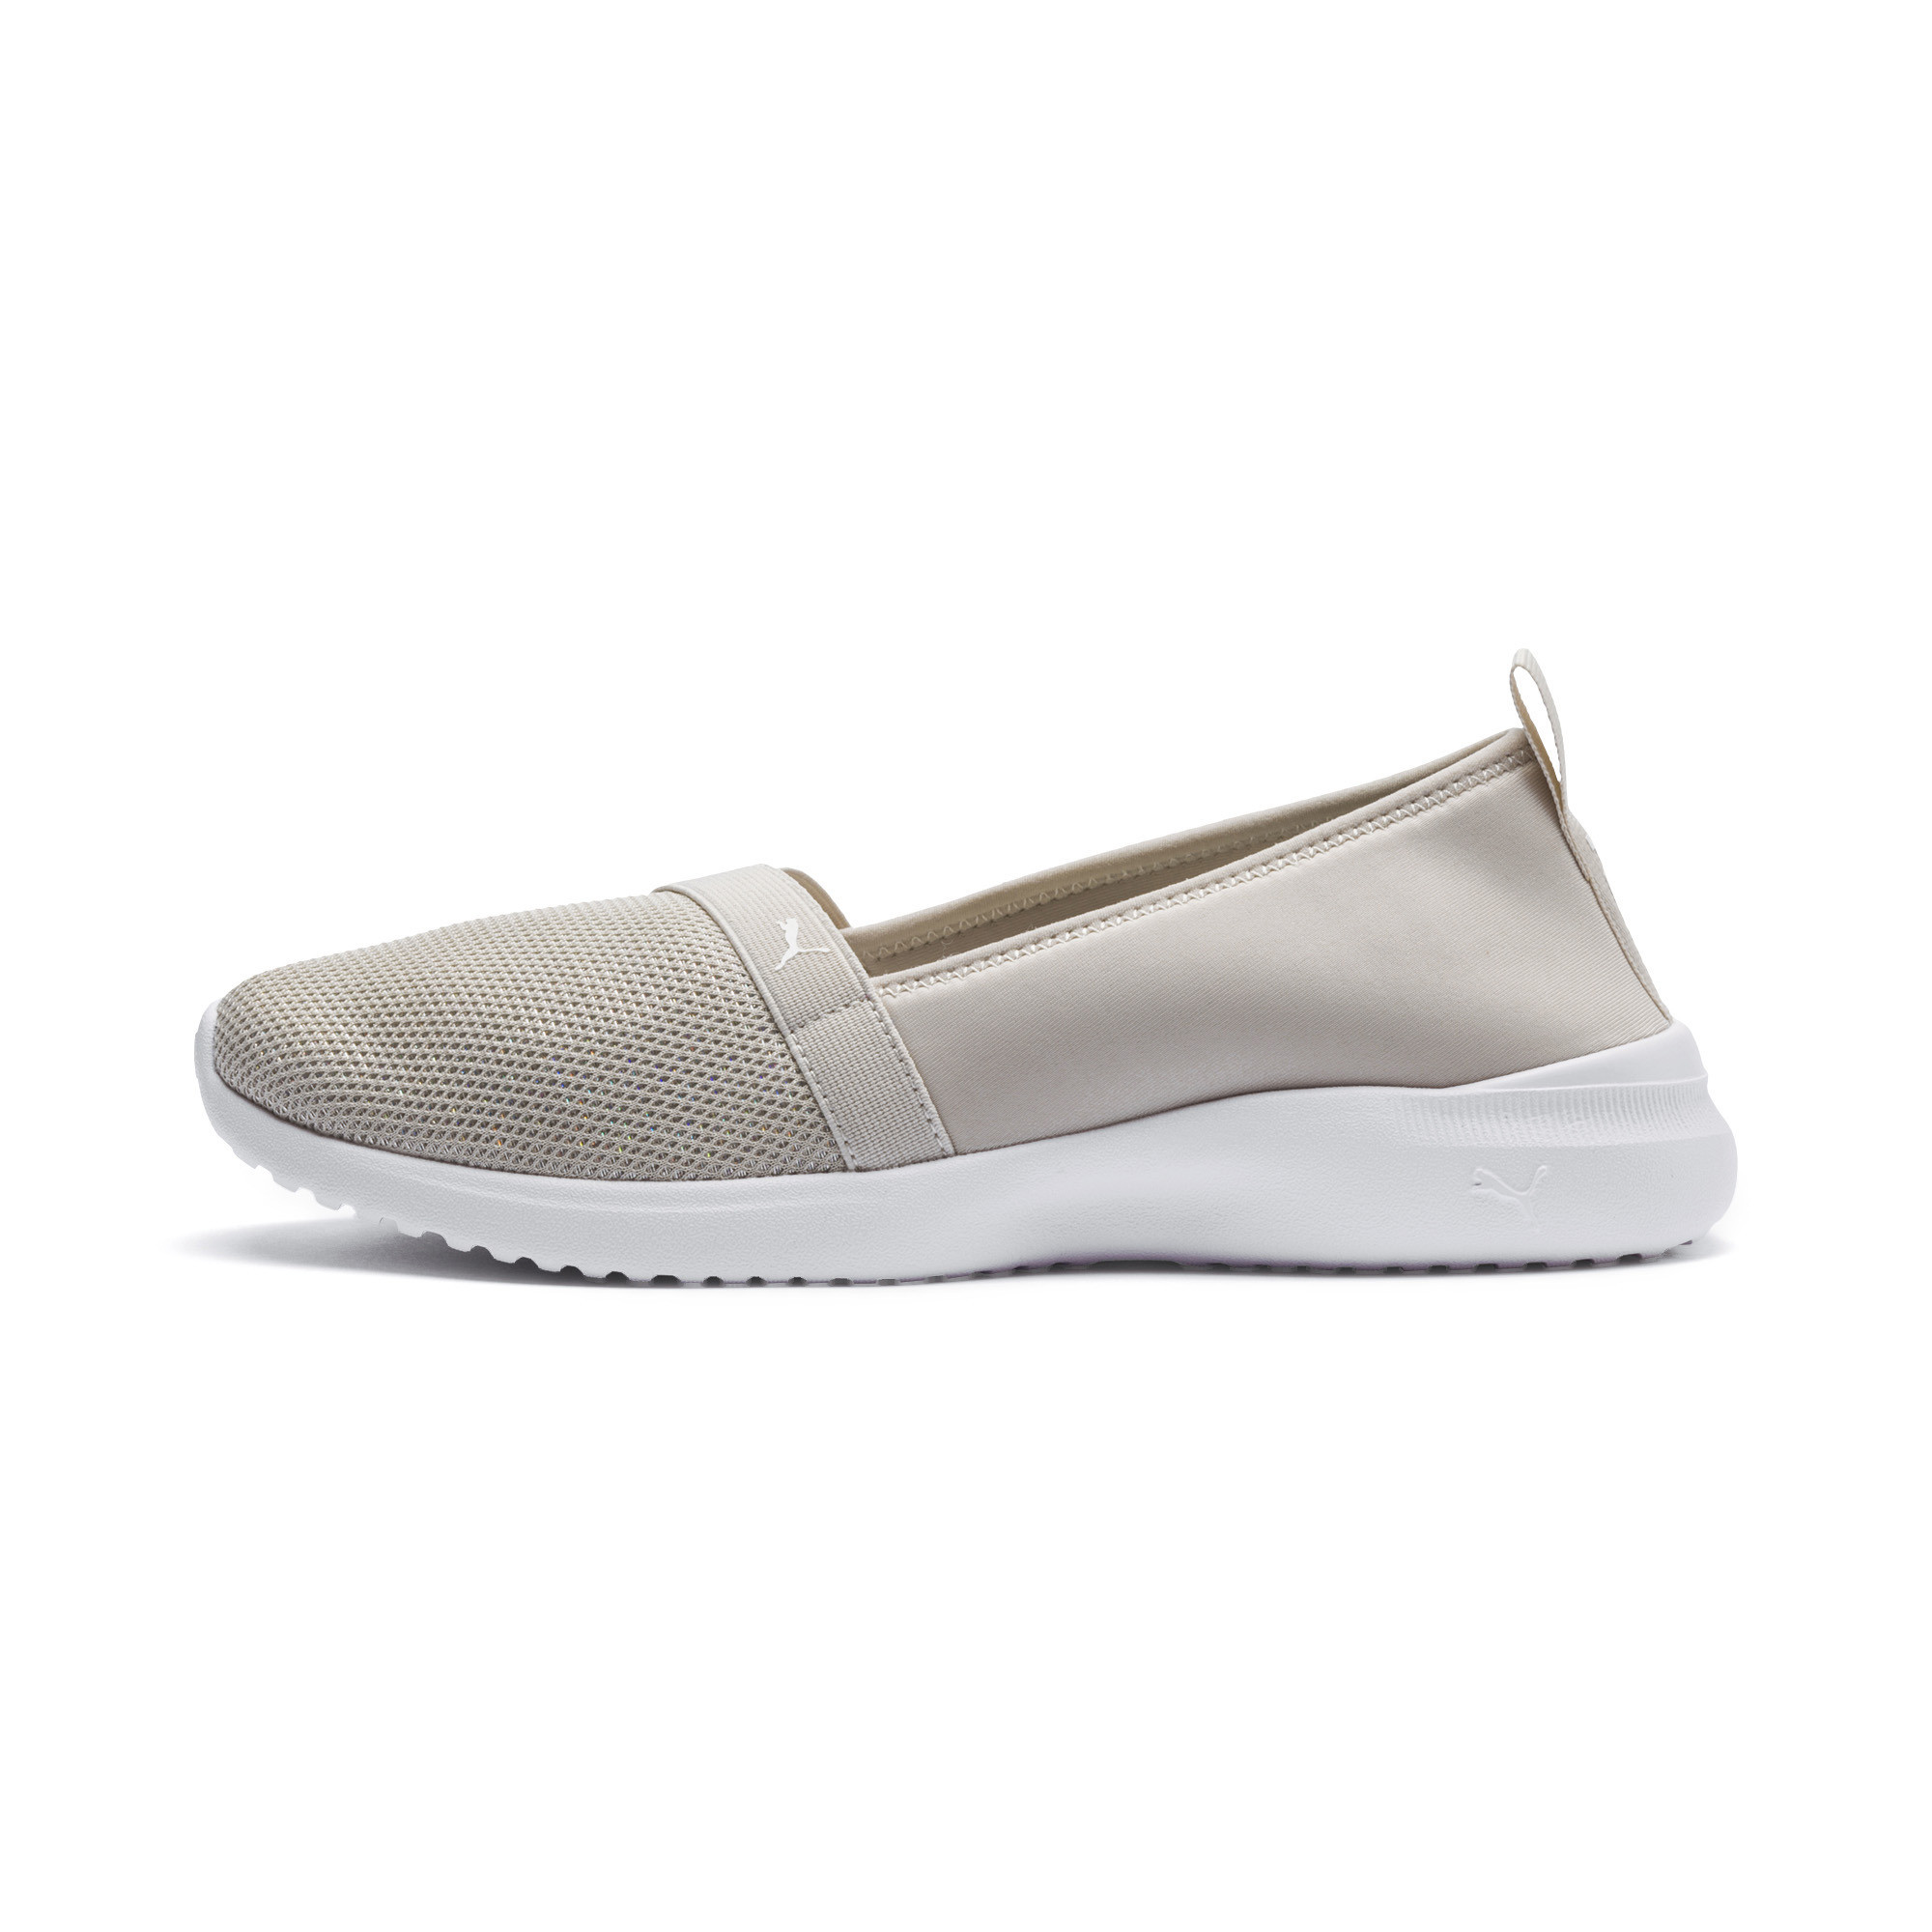 PUMA-Adelina-Sparkle-Women-s-Ballet-Shoes-Women-Shoe-Basics thumbnail 5